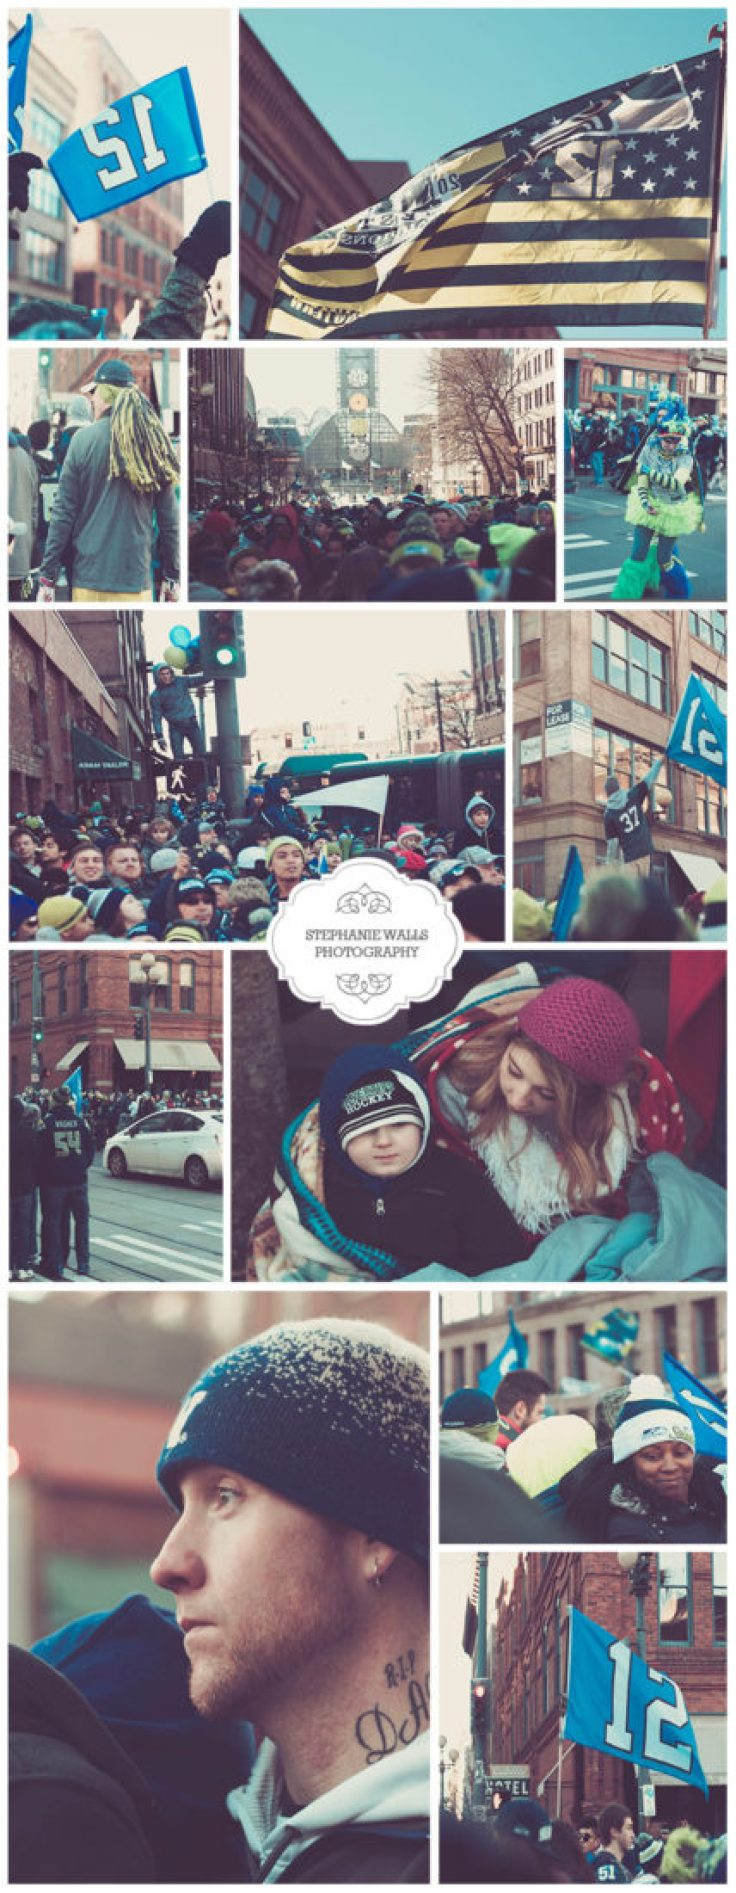 Seahawks blog 700,000 SEAHAWK PARADE|SEATTLE PHOTOGRAPHER